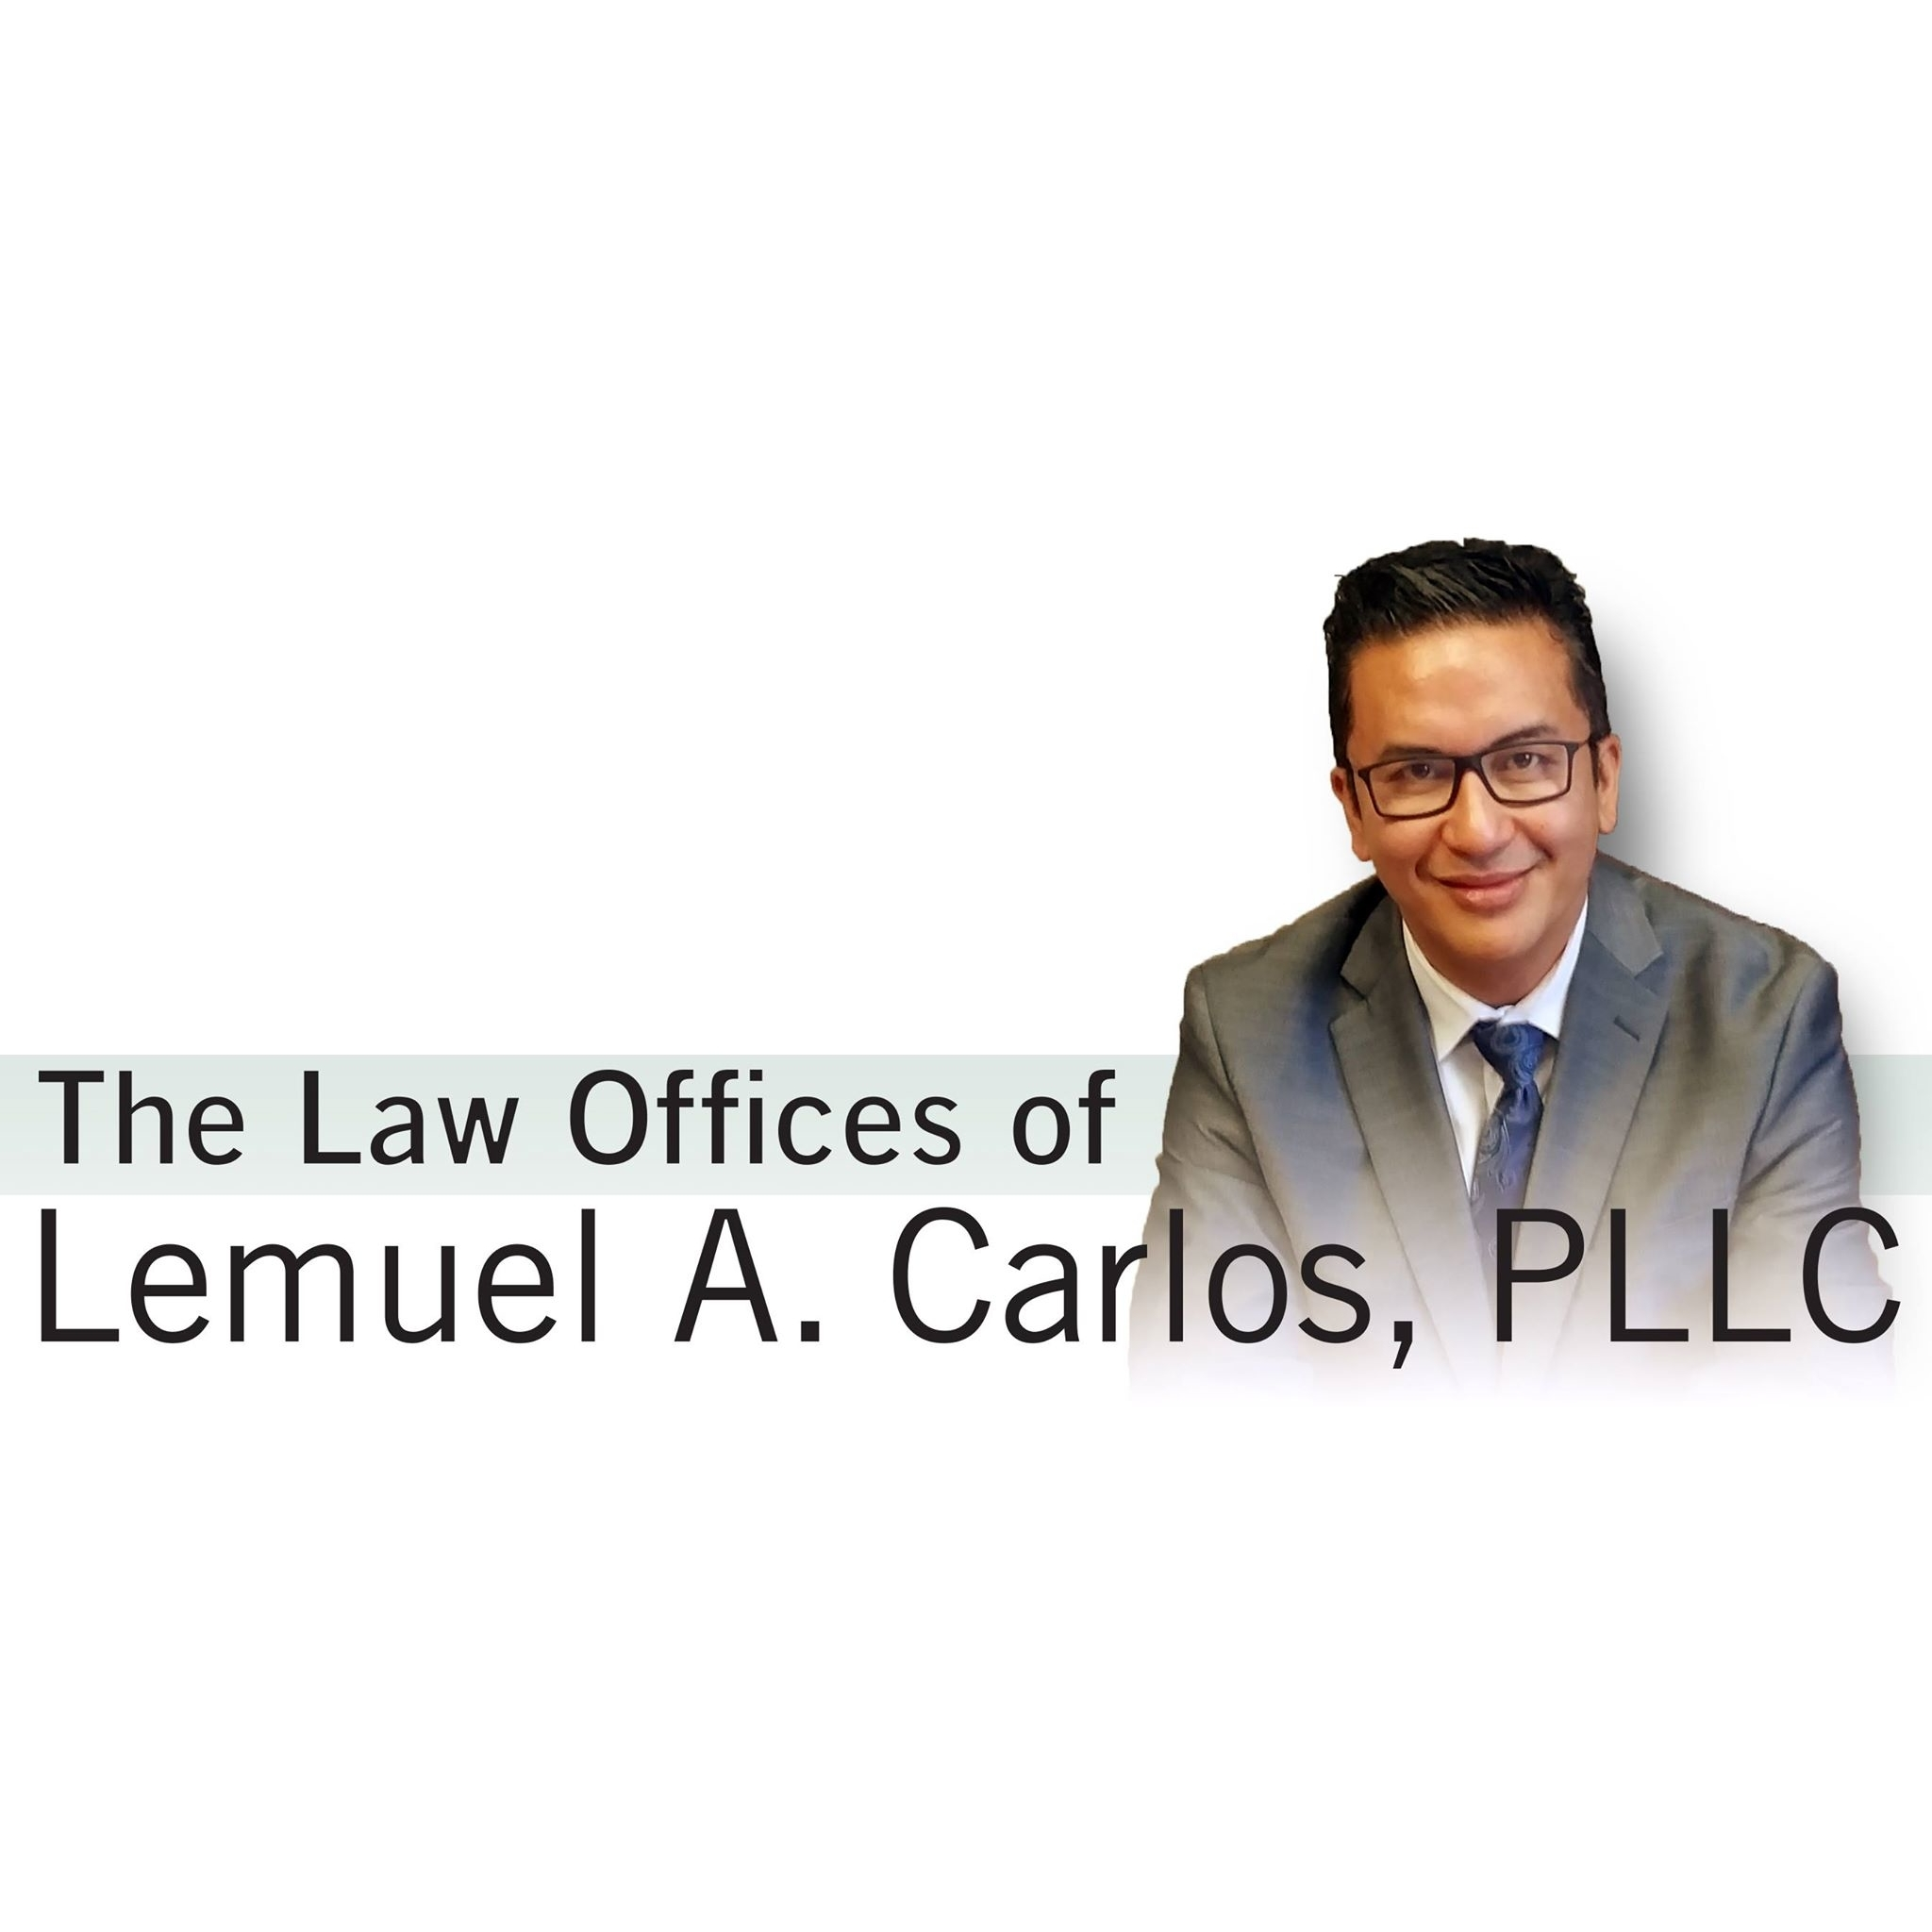 The Law Office of Lemuel A. Carlos